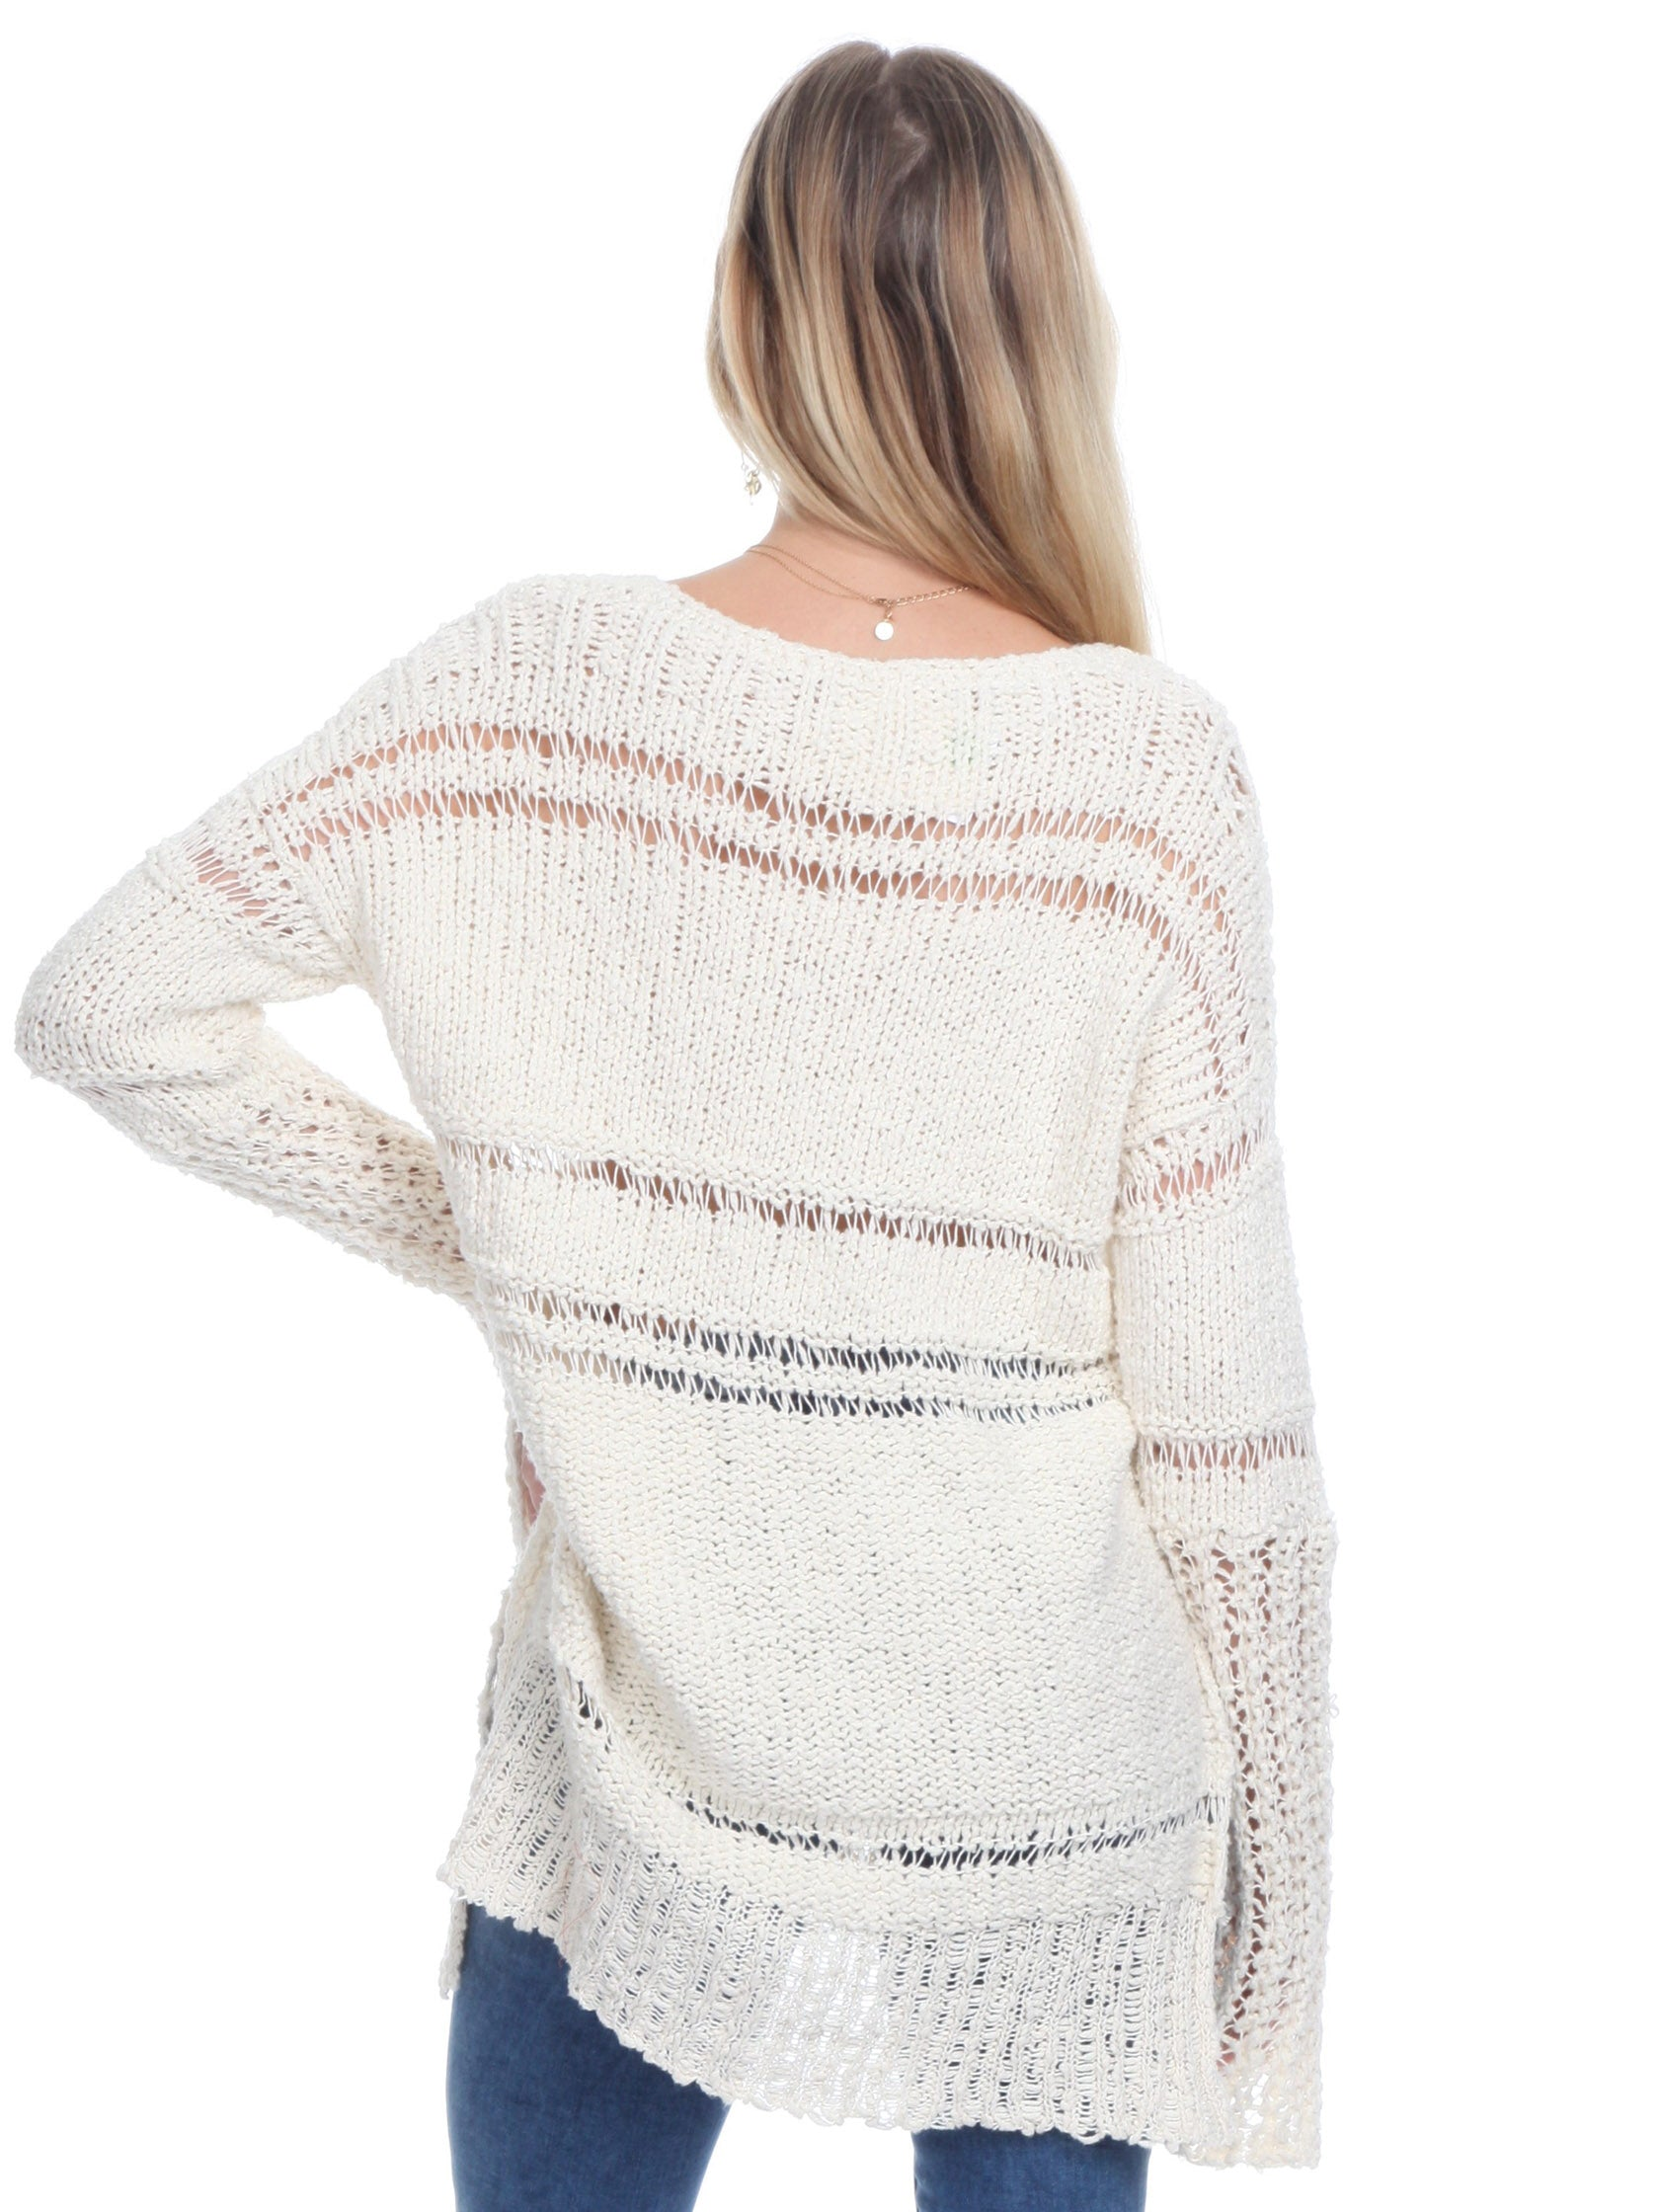 Women outfit in a sweater rental from Free People called Belong To You Sweater